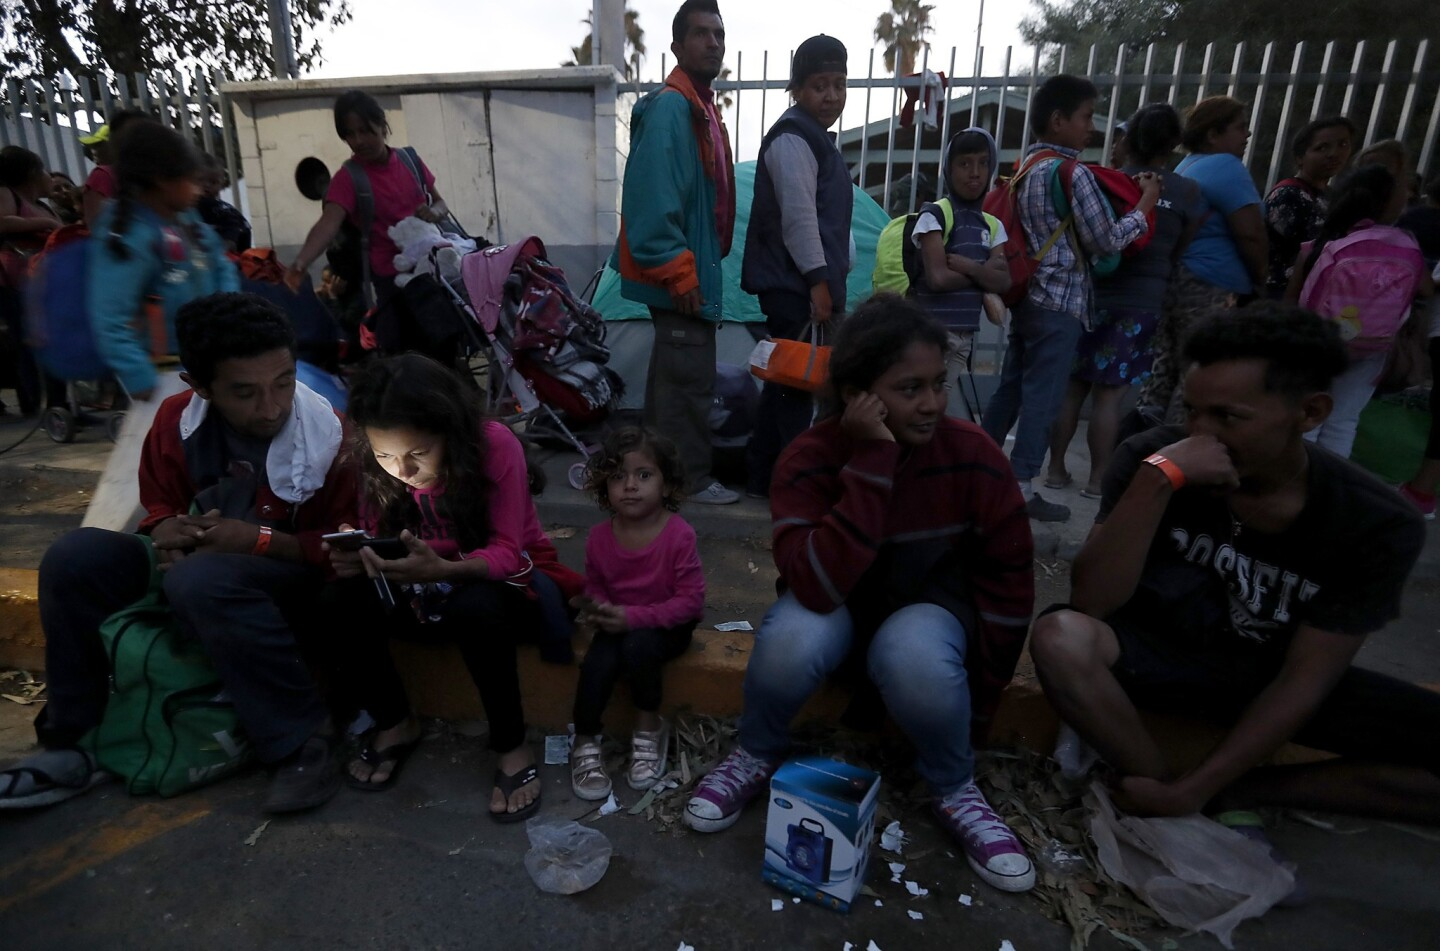 Migrants who are part of the caravan that has made its way from Honduras wait for shelter outside the Benito Juarez Sports Center in Tijuana on Nov. 15.